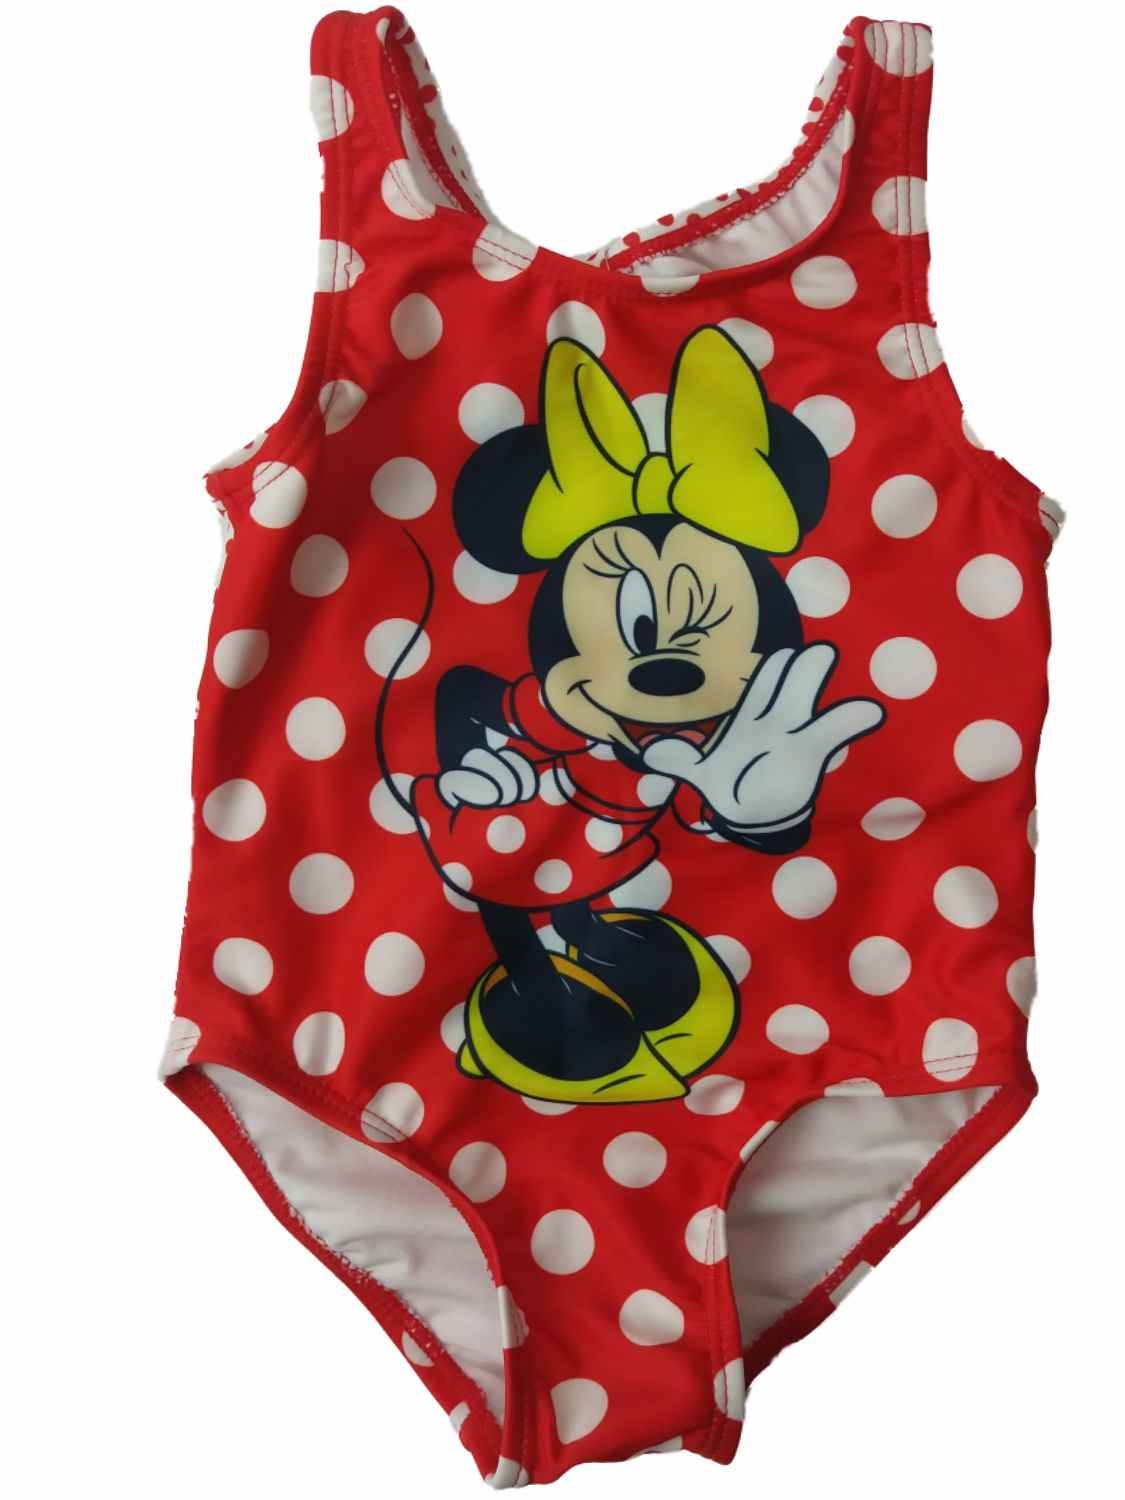 Infant Toddler Girls Disney Minnie Mouse Red Polka Dot 1 Piece Swimming Suit